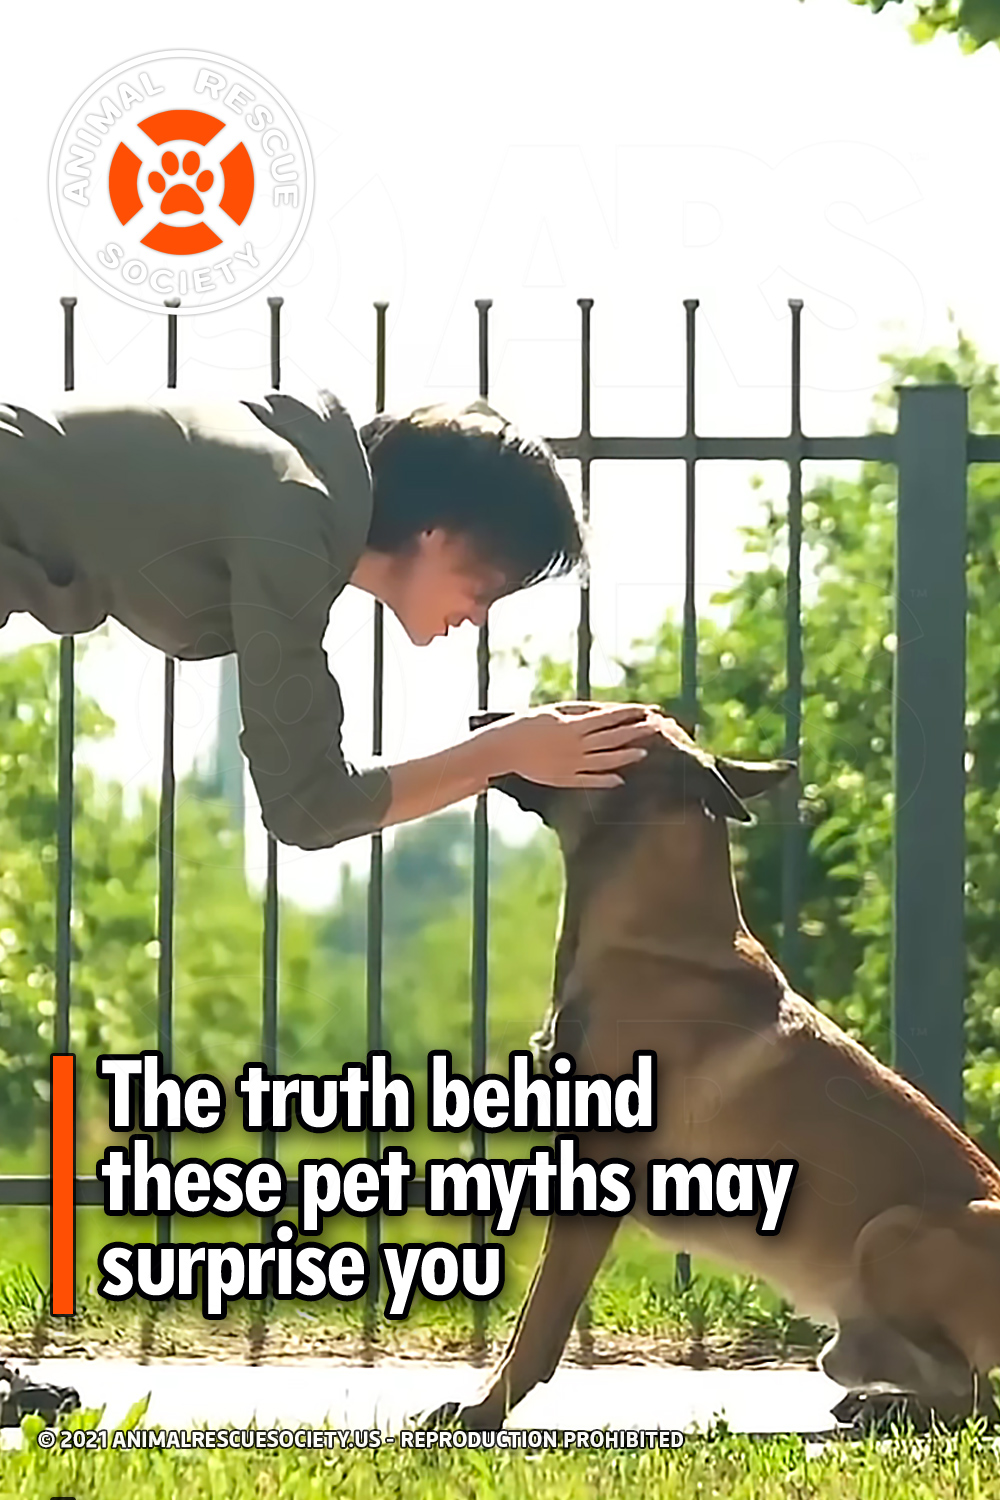 The truth behind these pet myths may surprise you